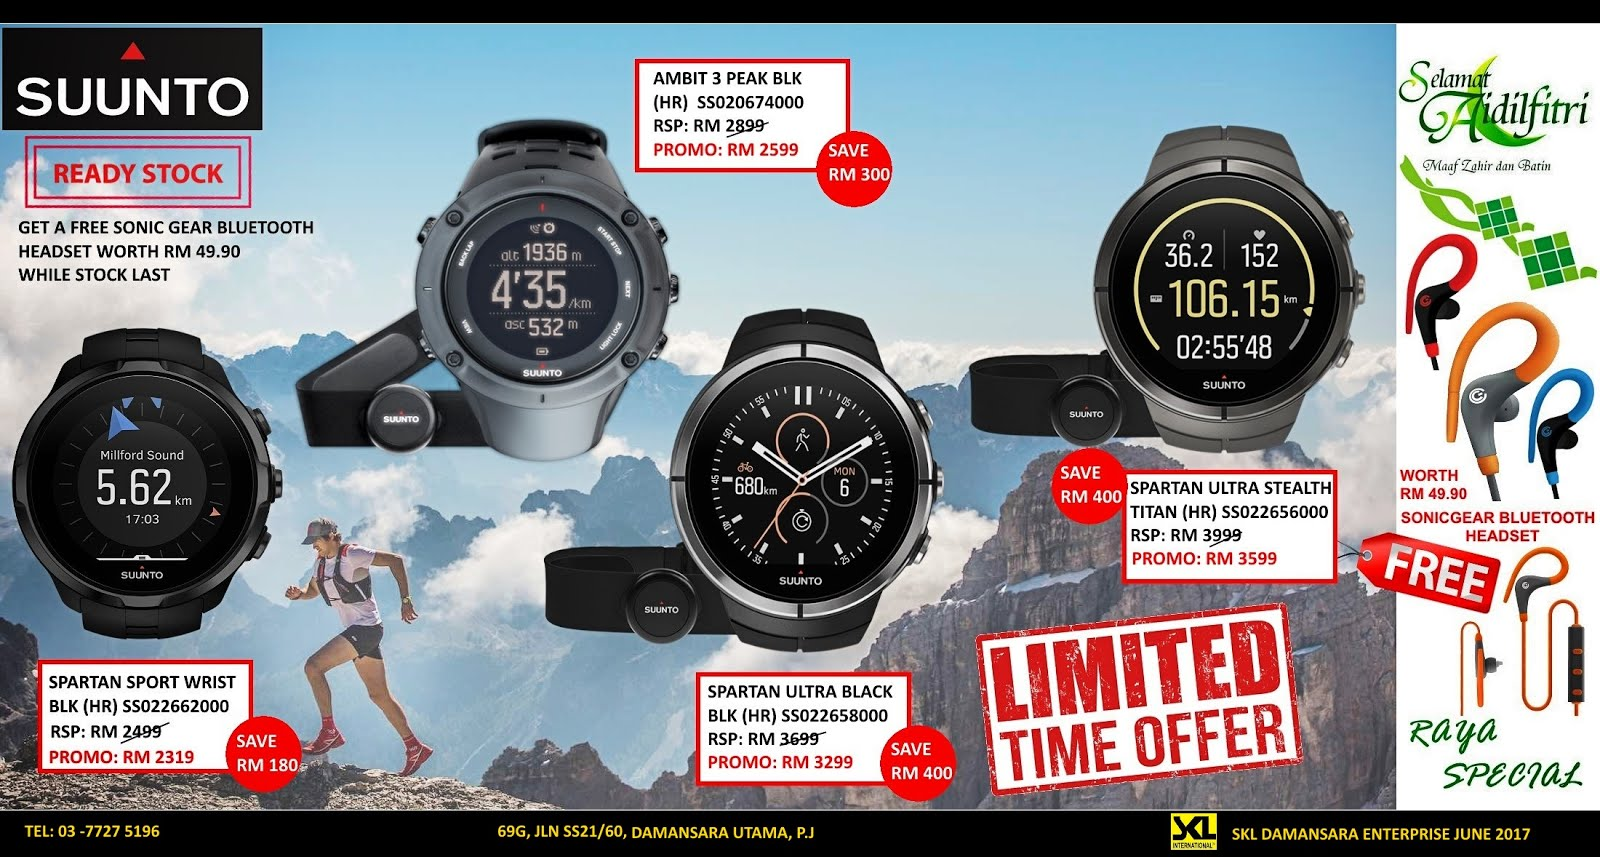 Raya Promotion!Suunto Spartan & Ambit 3 Peak Series Free SonicGear Bluetooth Headset worth RM49.9